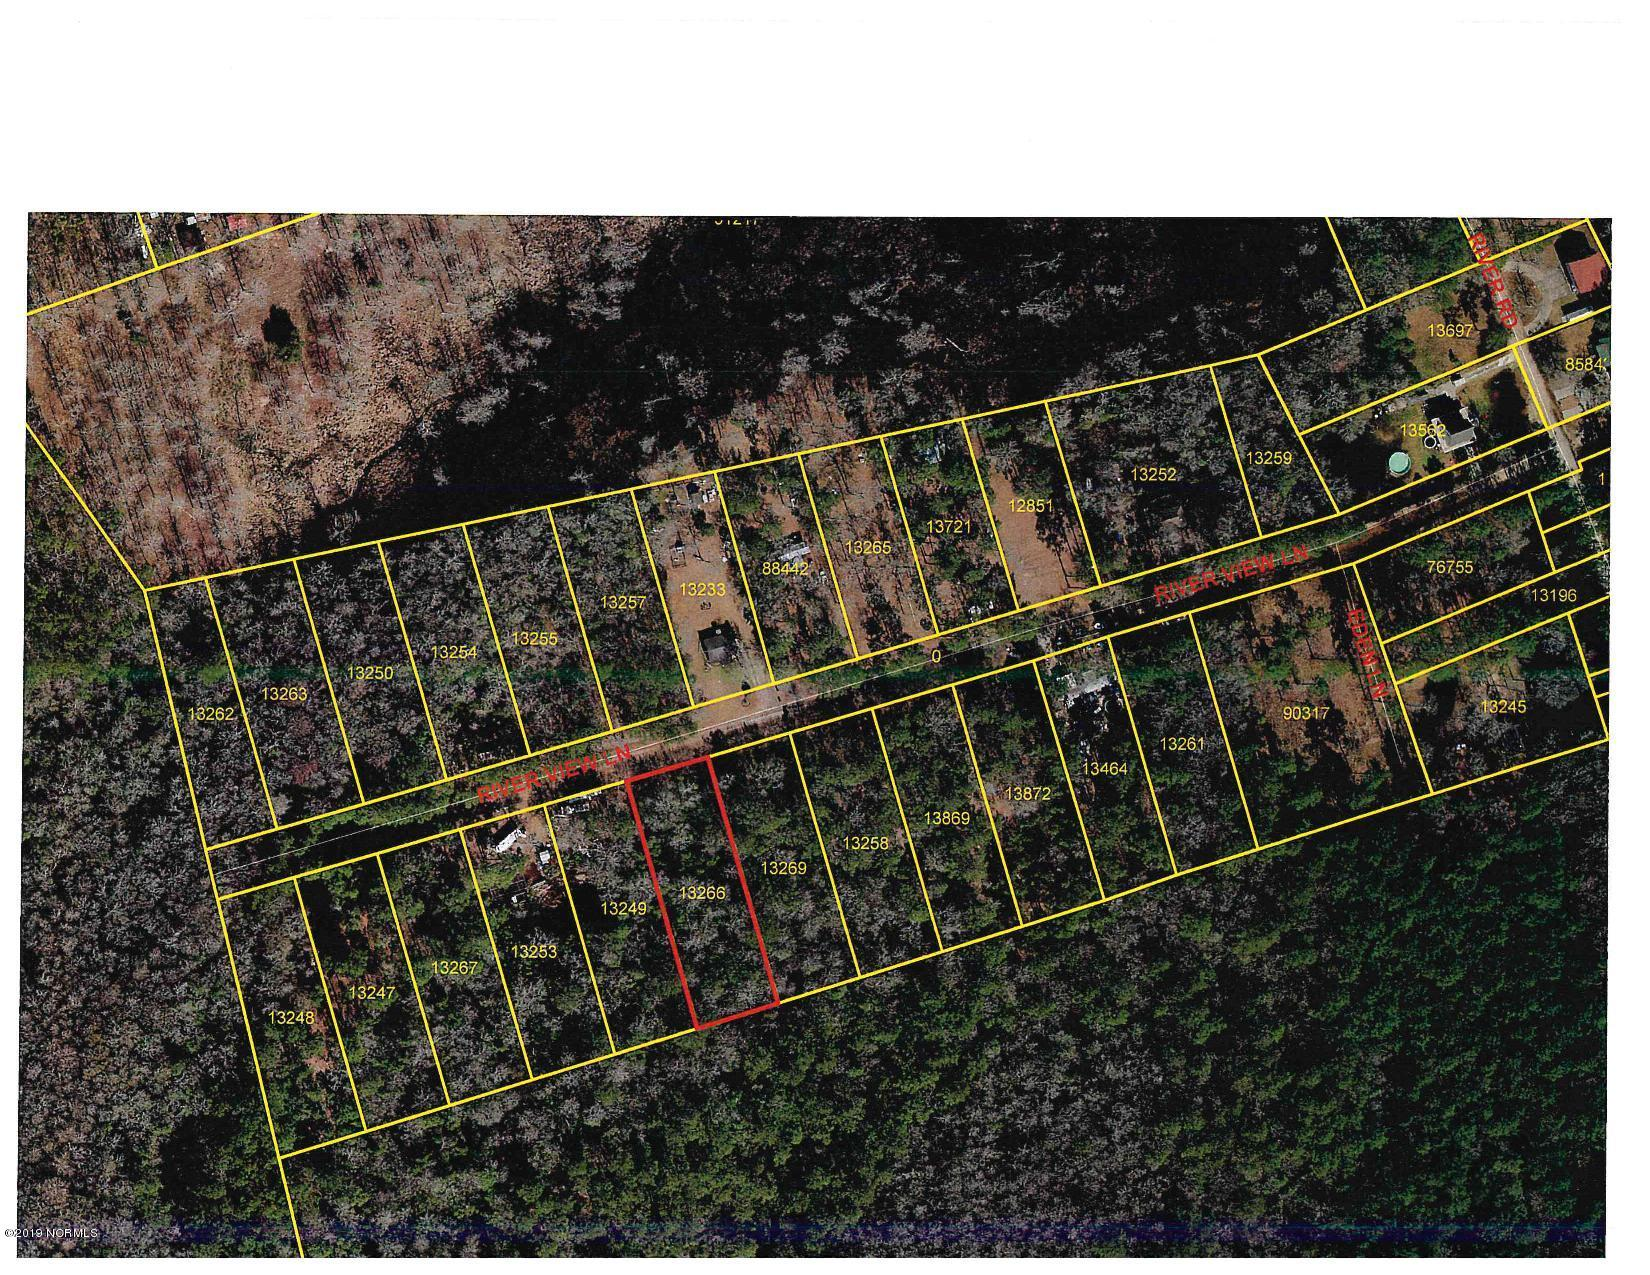 231 Riverview Lane, Tabor City, North Carolina 28463, ,Residential land,For sale,Riverview,100146360